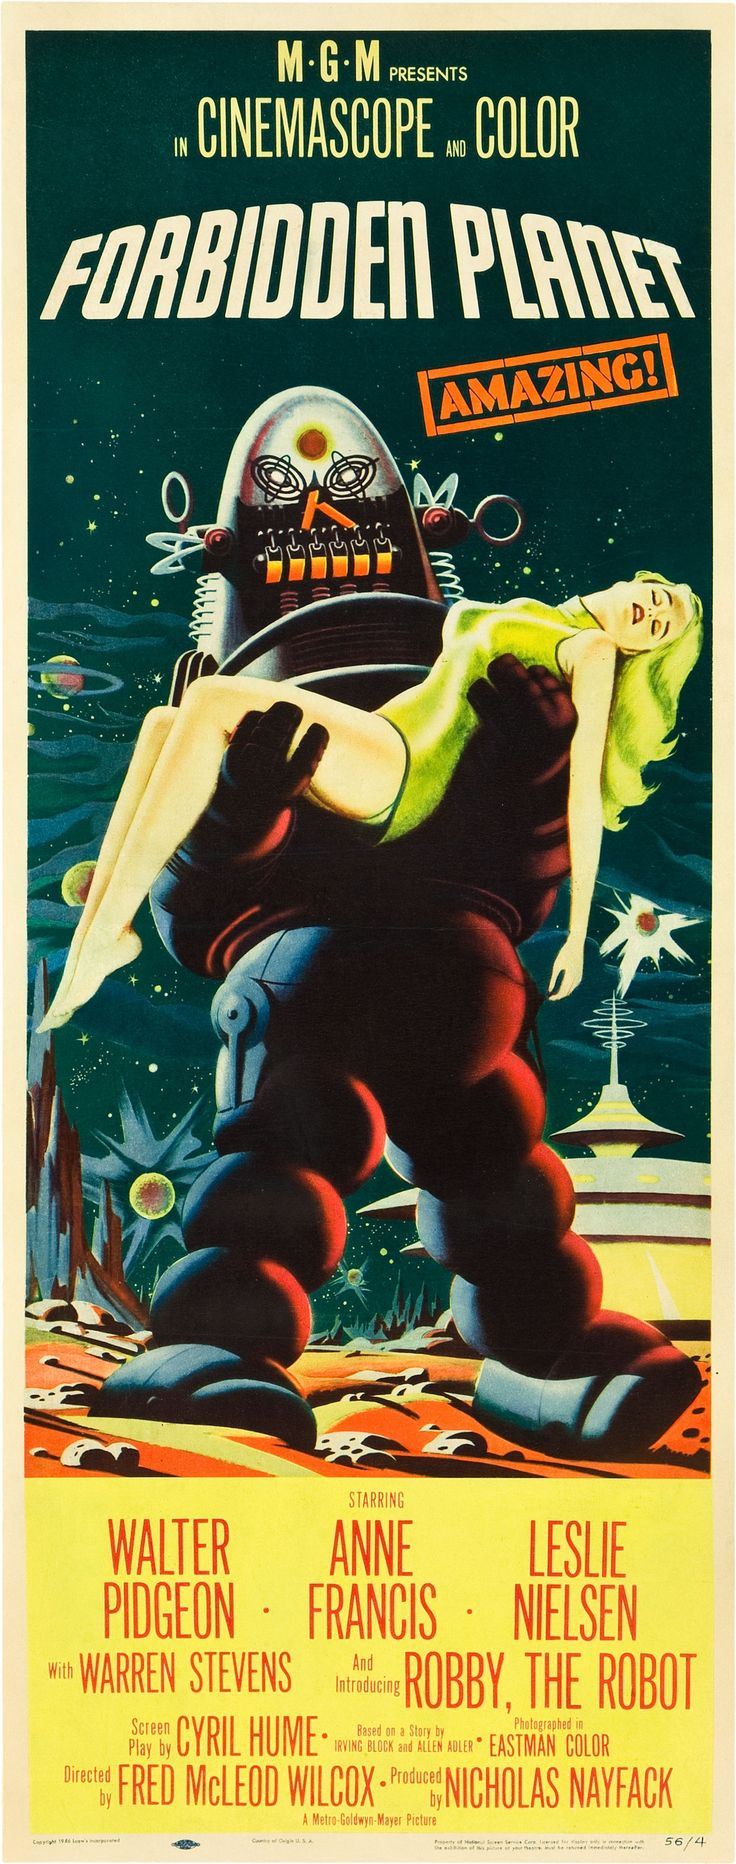 Forbidden Planet Premiered 15 March 1956 - love this film!!